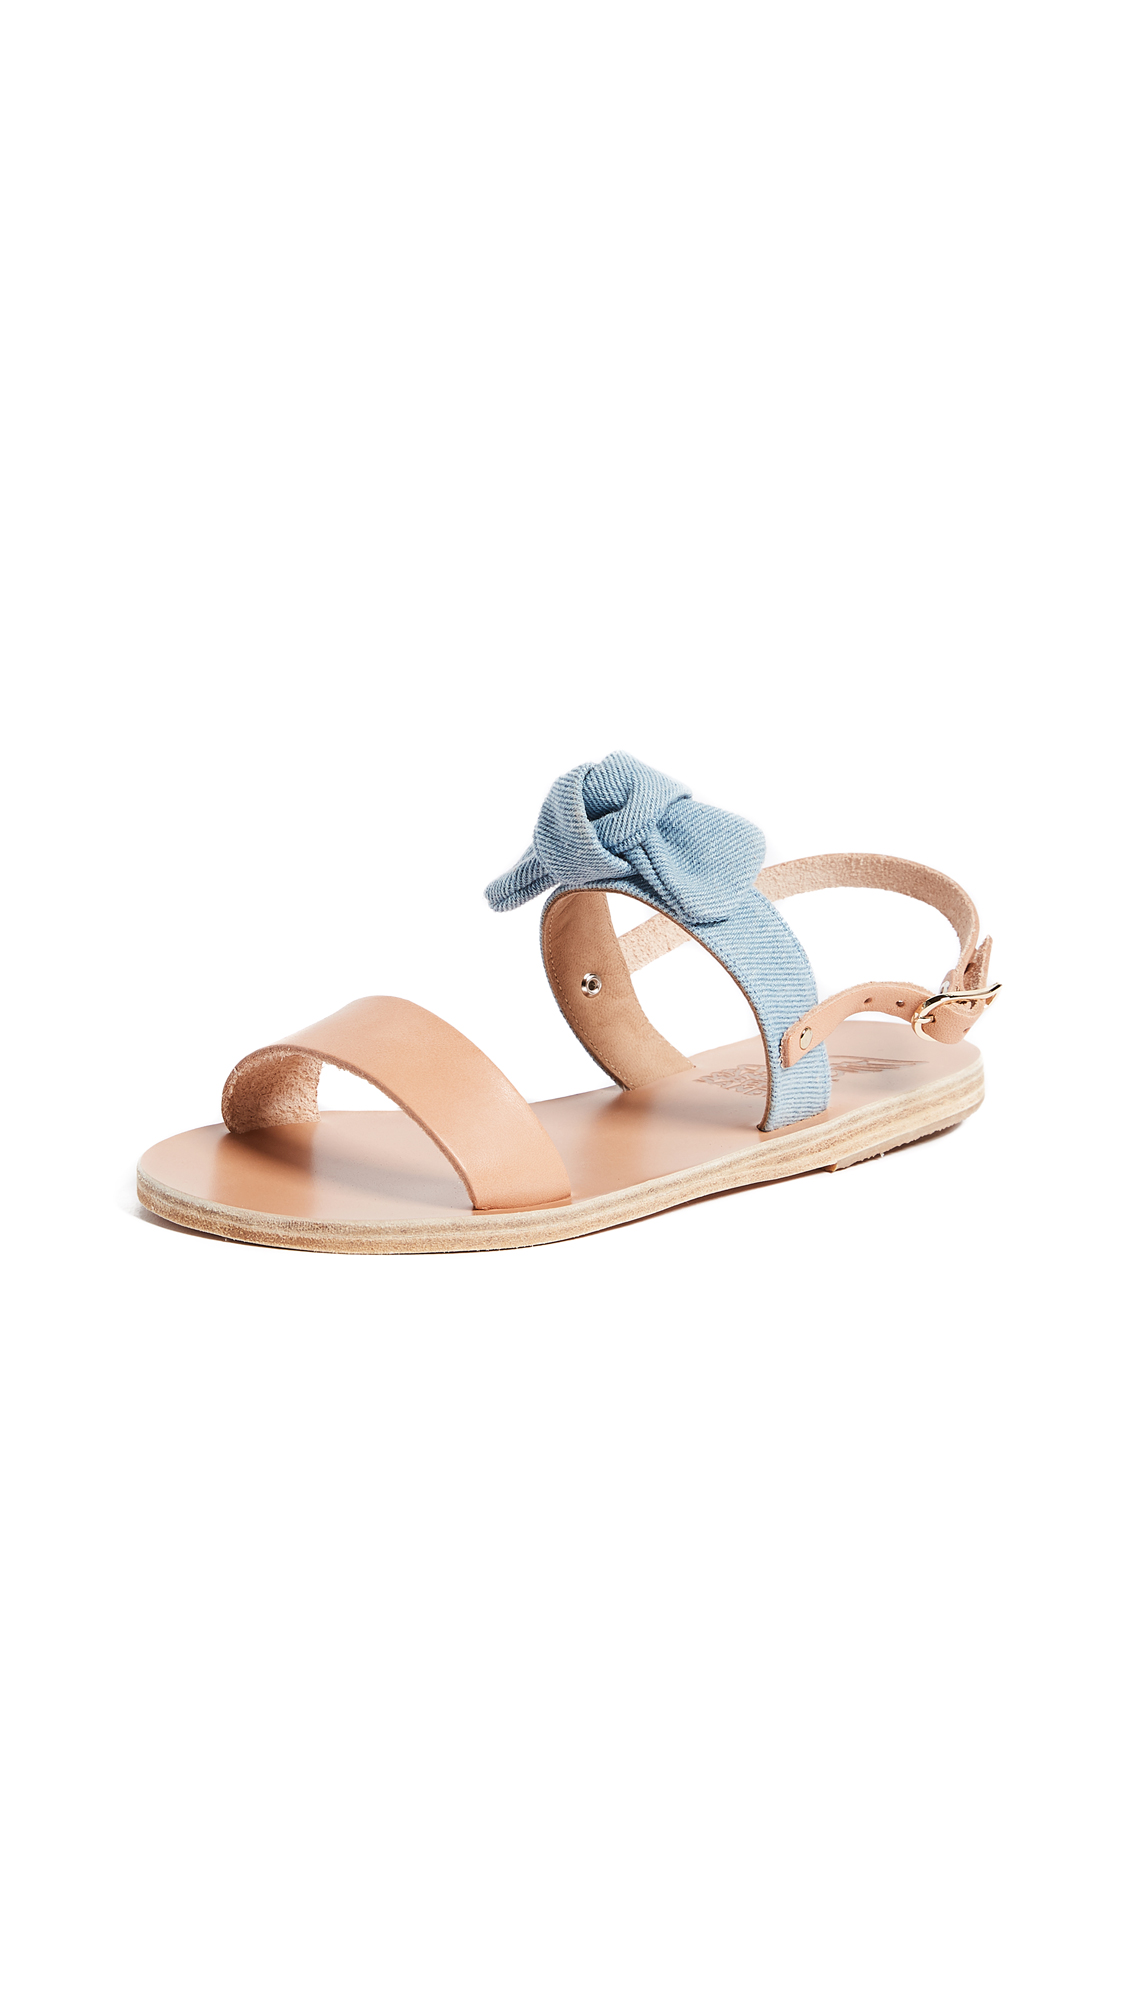 Ancient Greek Sandals Clio Bow Sandals - Natural/Light Denim